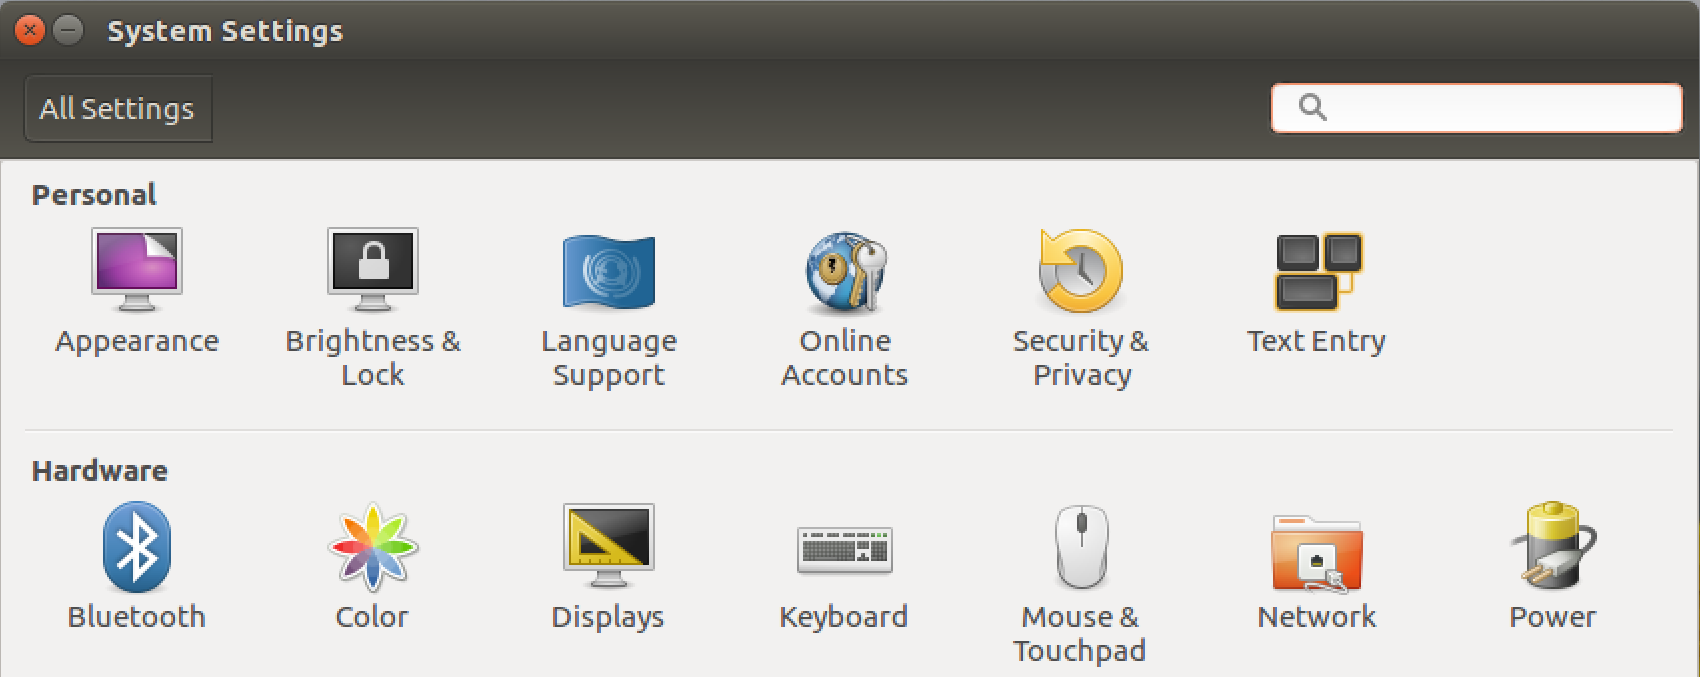 ubuntu linux system settings preferences panel pane